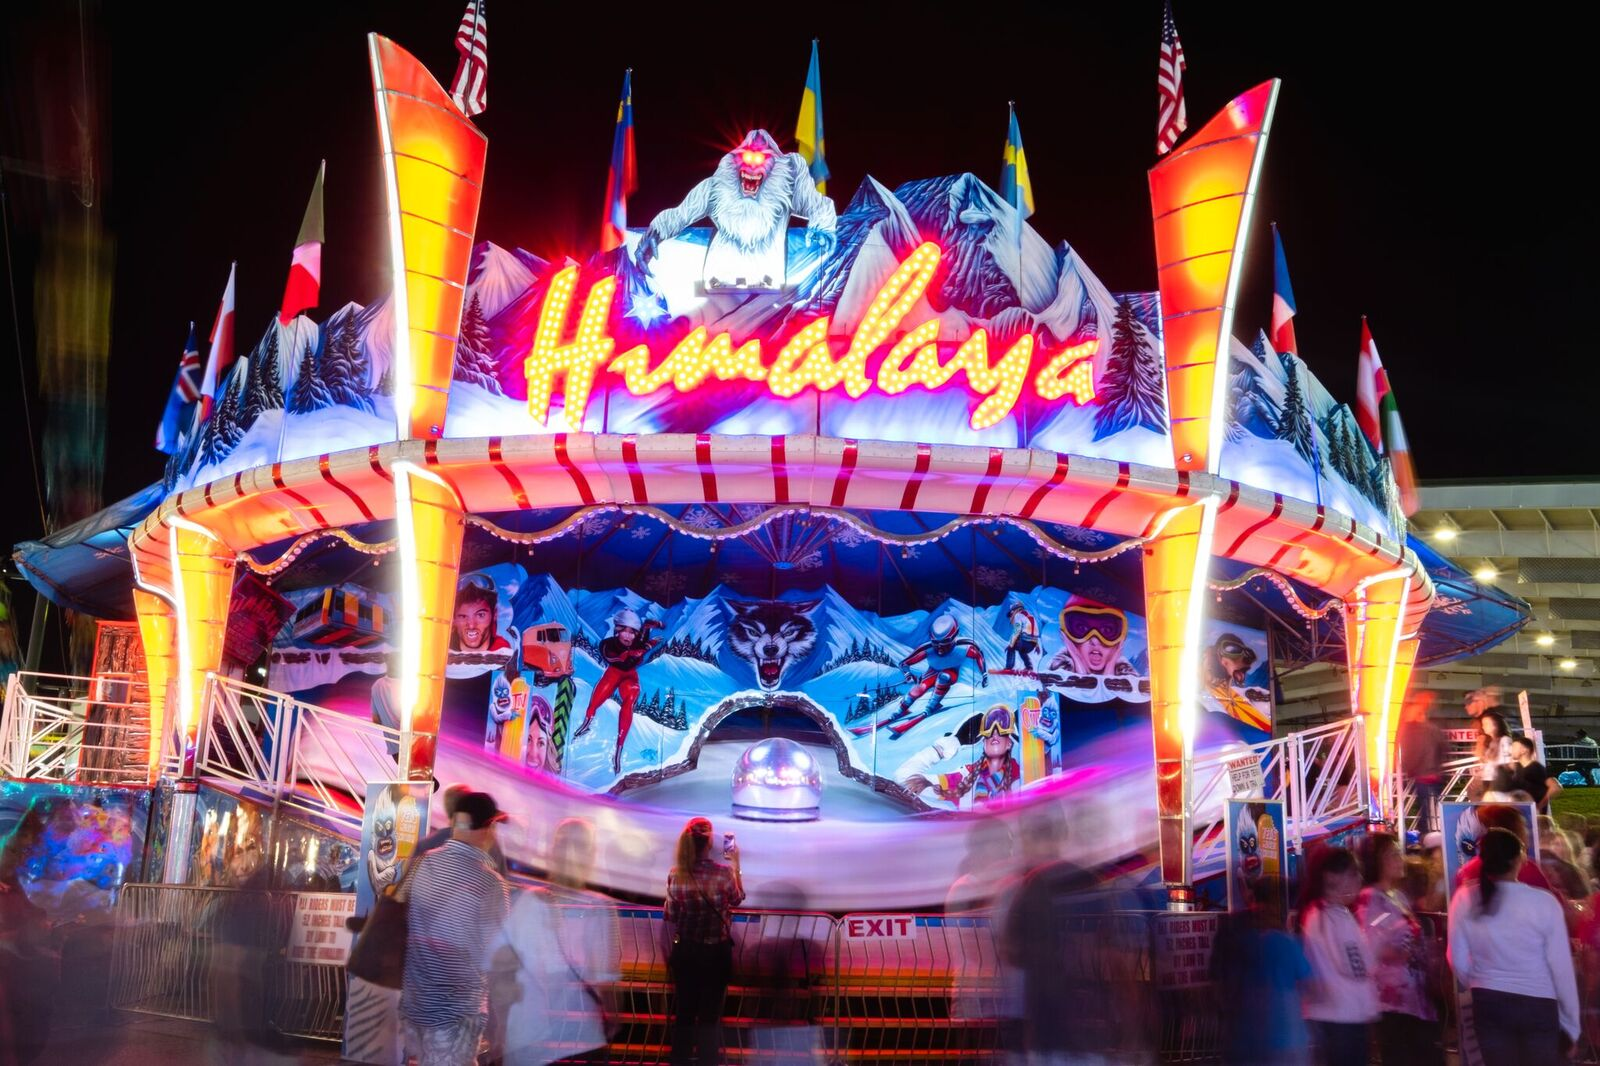 Monday, October 7Student Night - Pay One Price: $20 Unlimited Rides (per person)